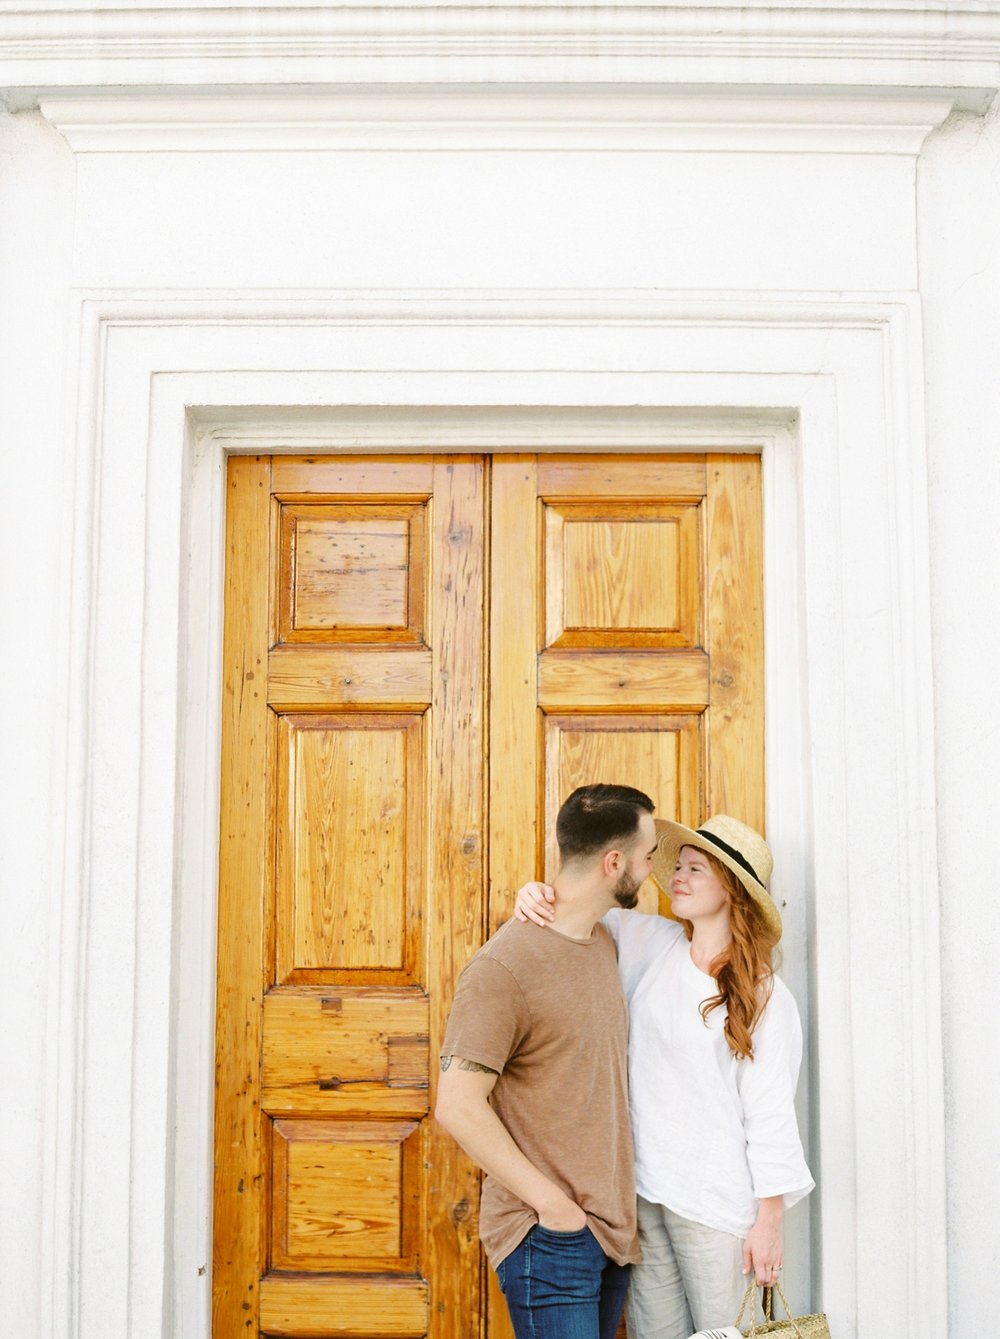 Charleston wedding photographers | charleston anniversary | Justine Milton fine art film Photography | south carolina anniversary |